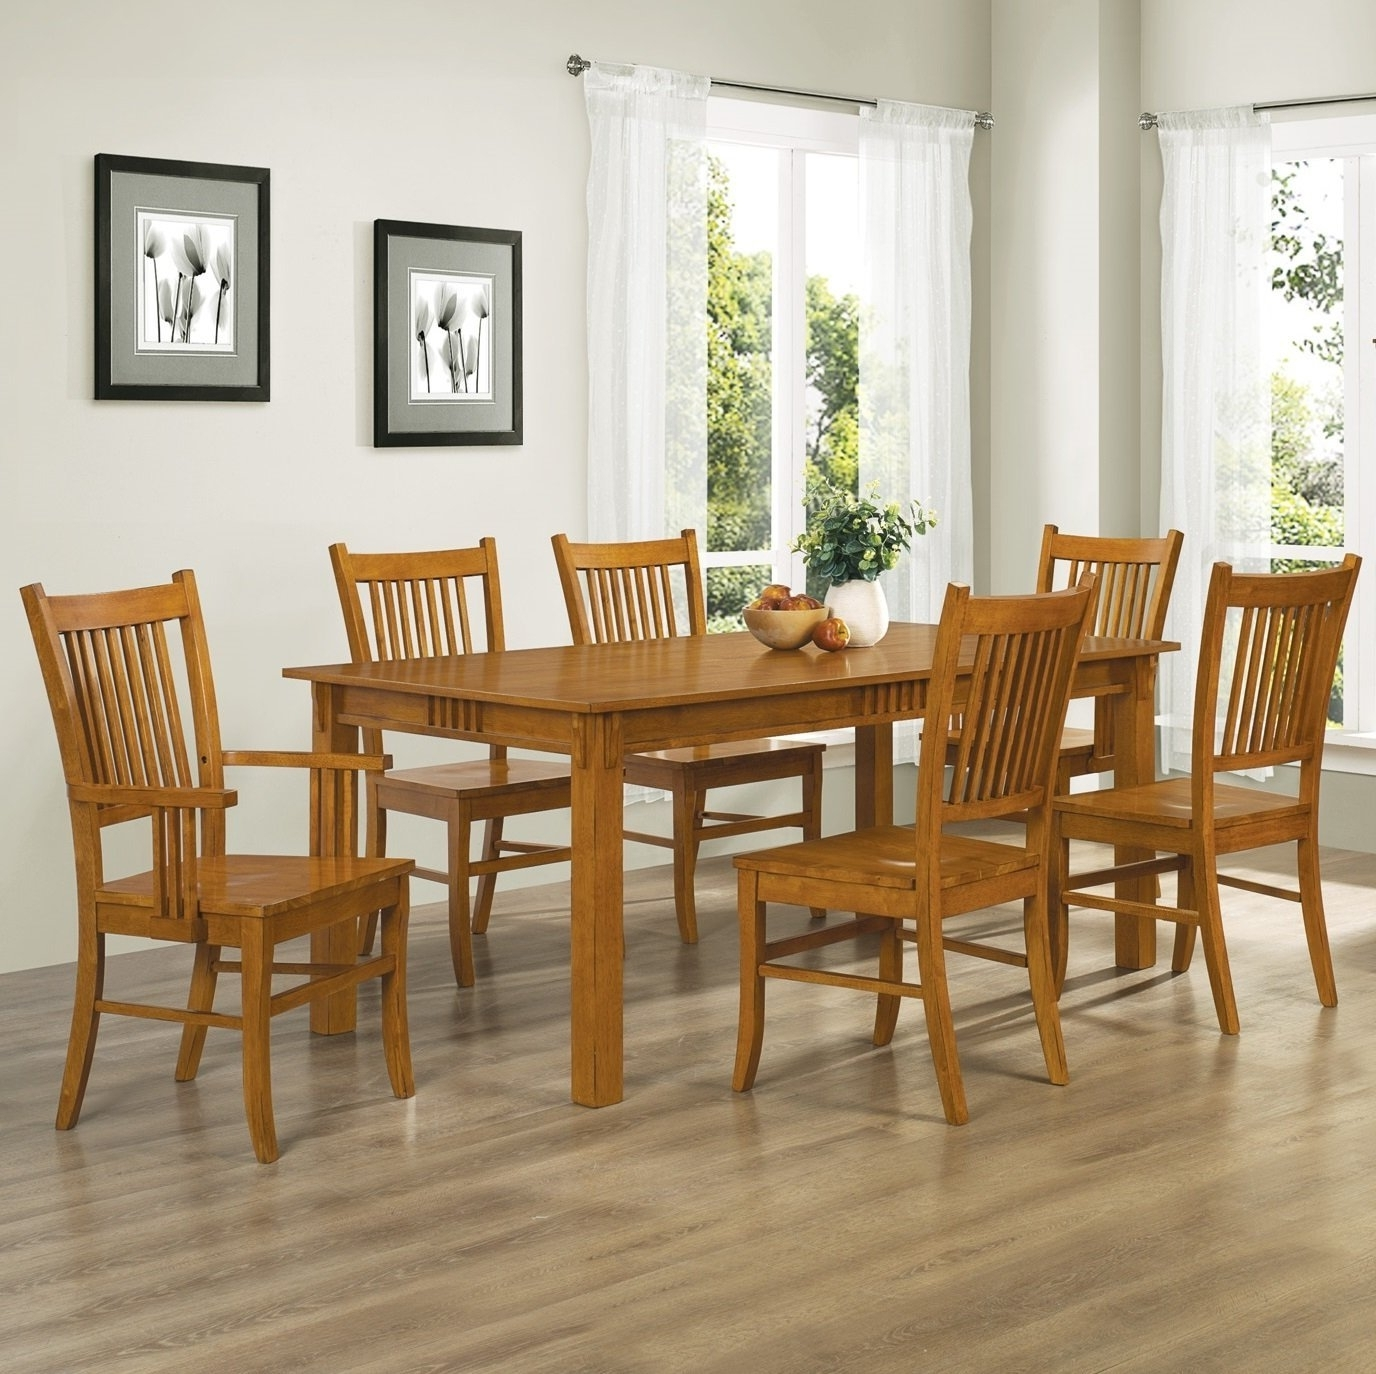 Fantastic Dining Room Table For 6 – Esescatrina Pertaining To 2017 6 Chair Dining Table Sets (View 10 of 25)